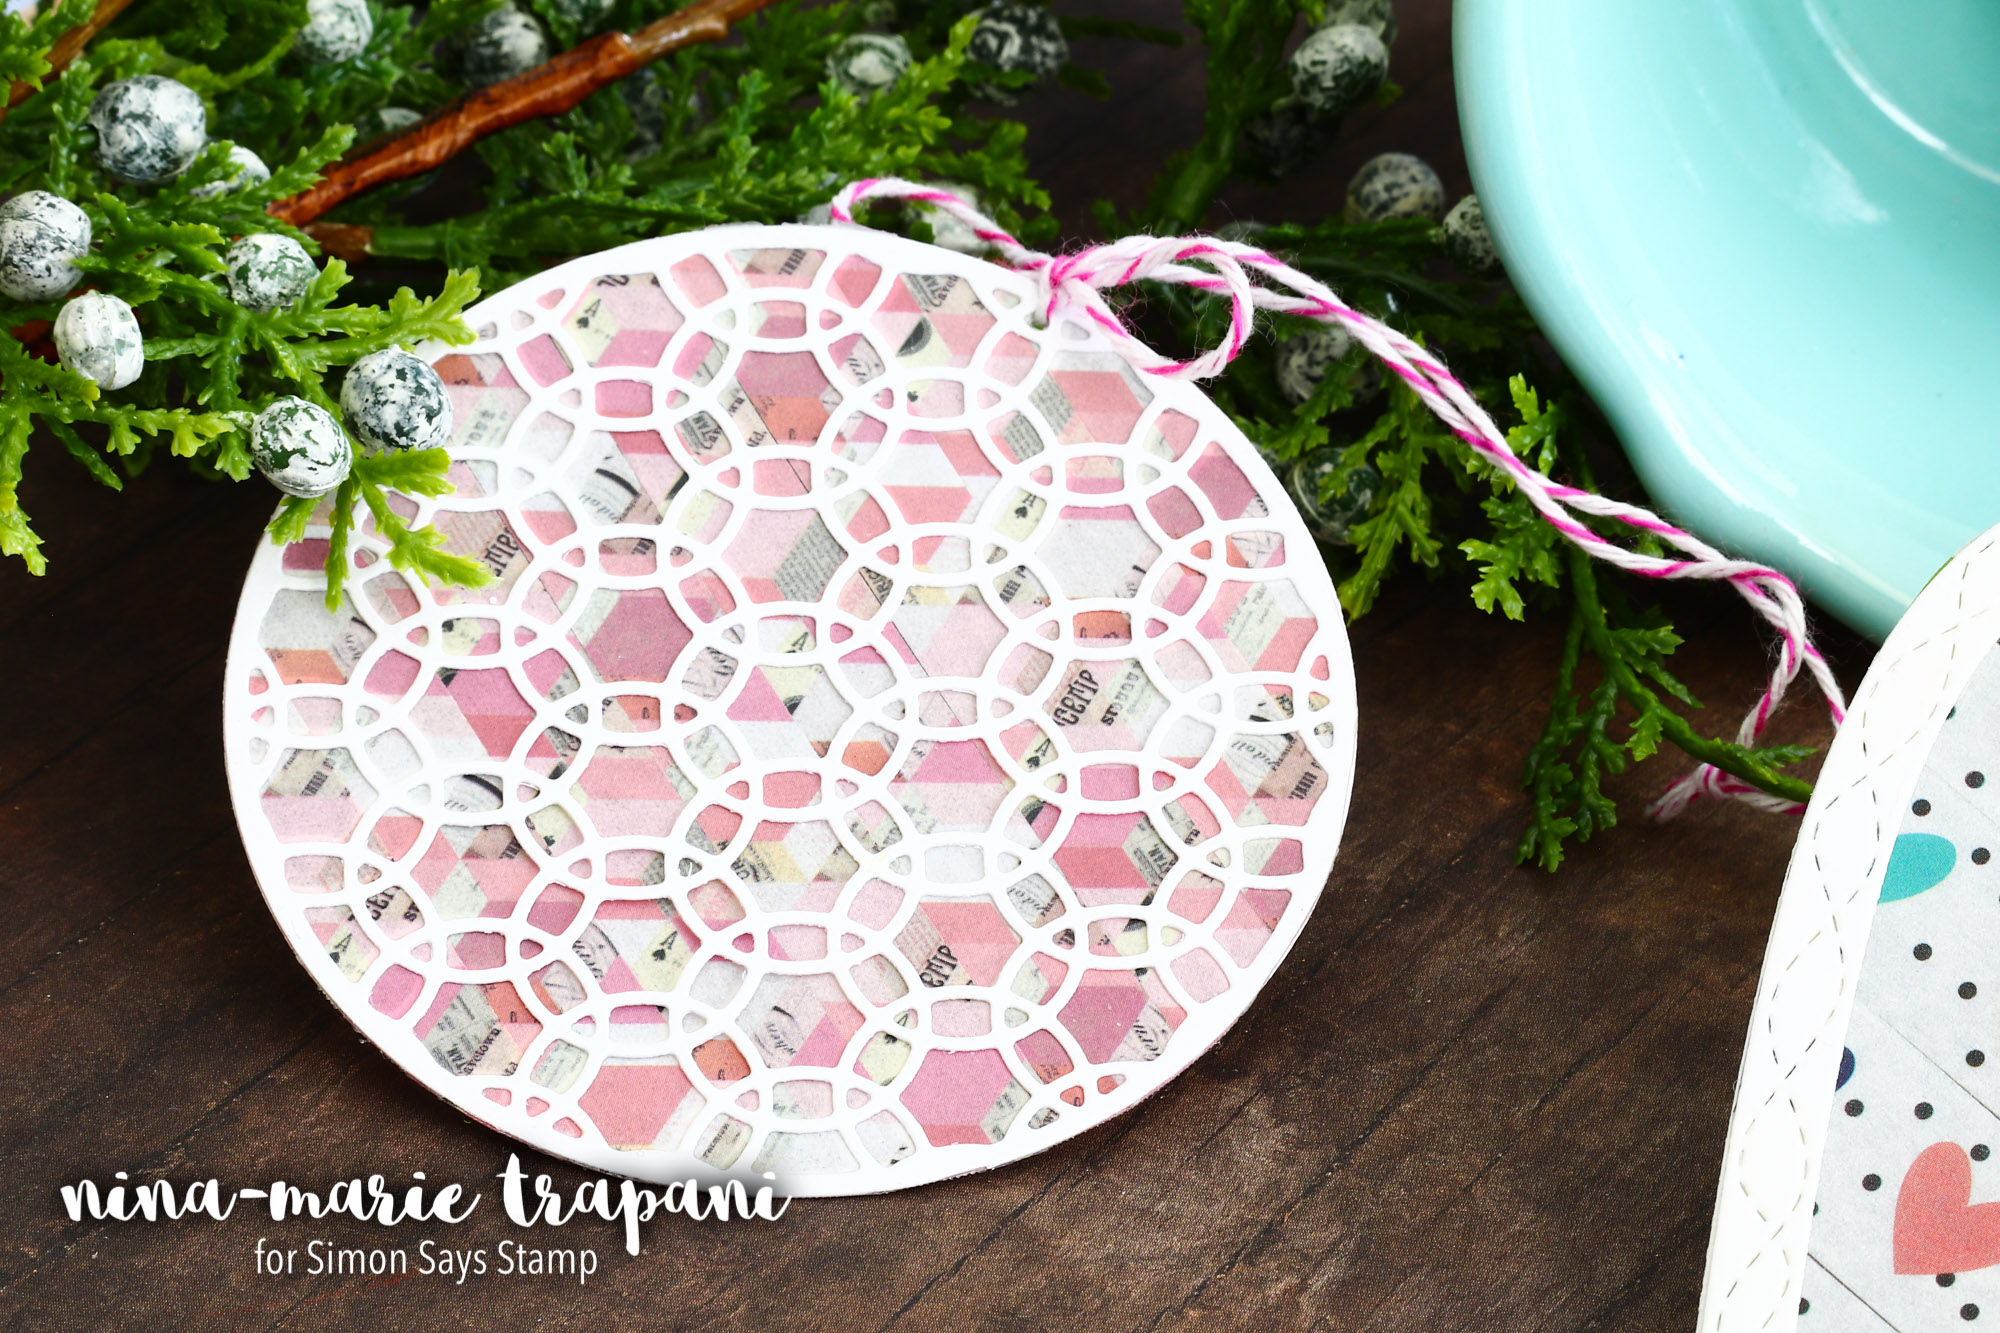 Studio Monday with Nina-Marie: Washi Tape Sun Catchers